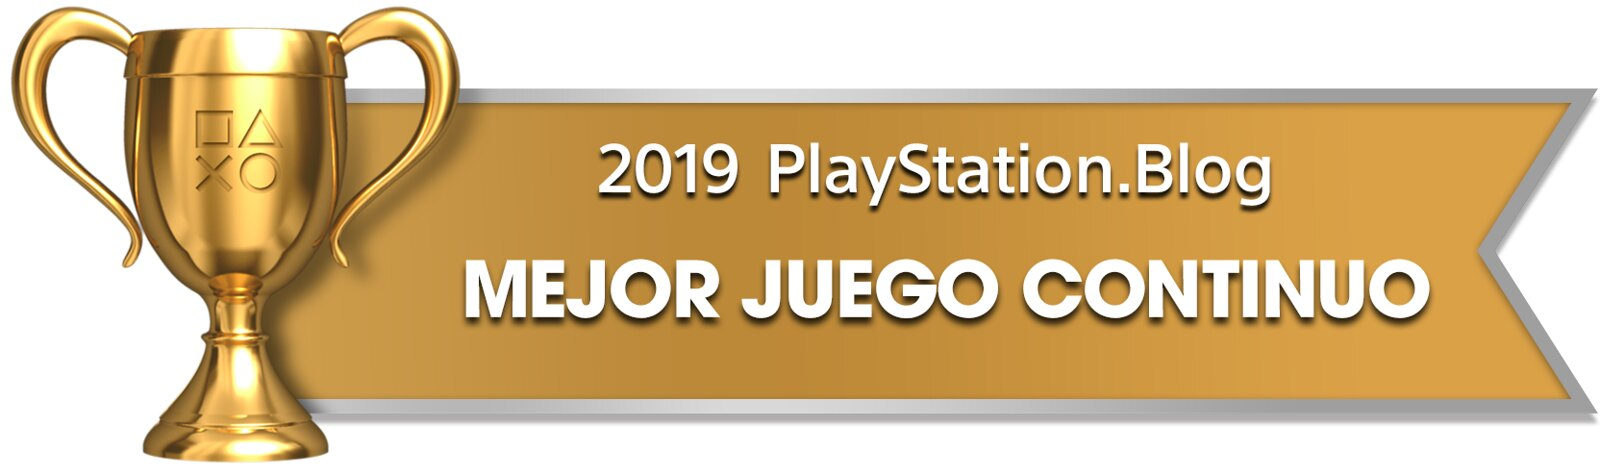 PS Blog Game of the Year 2019 - Best Ongoing Game - 2 - Gold